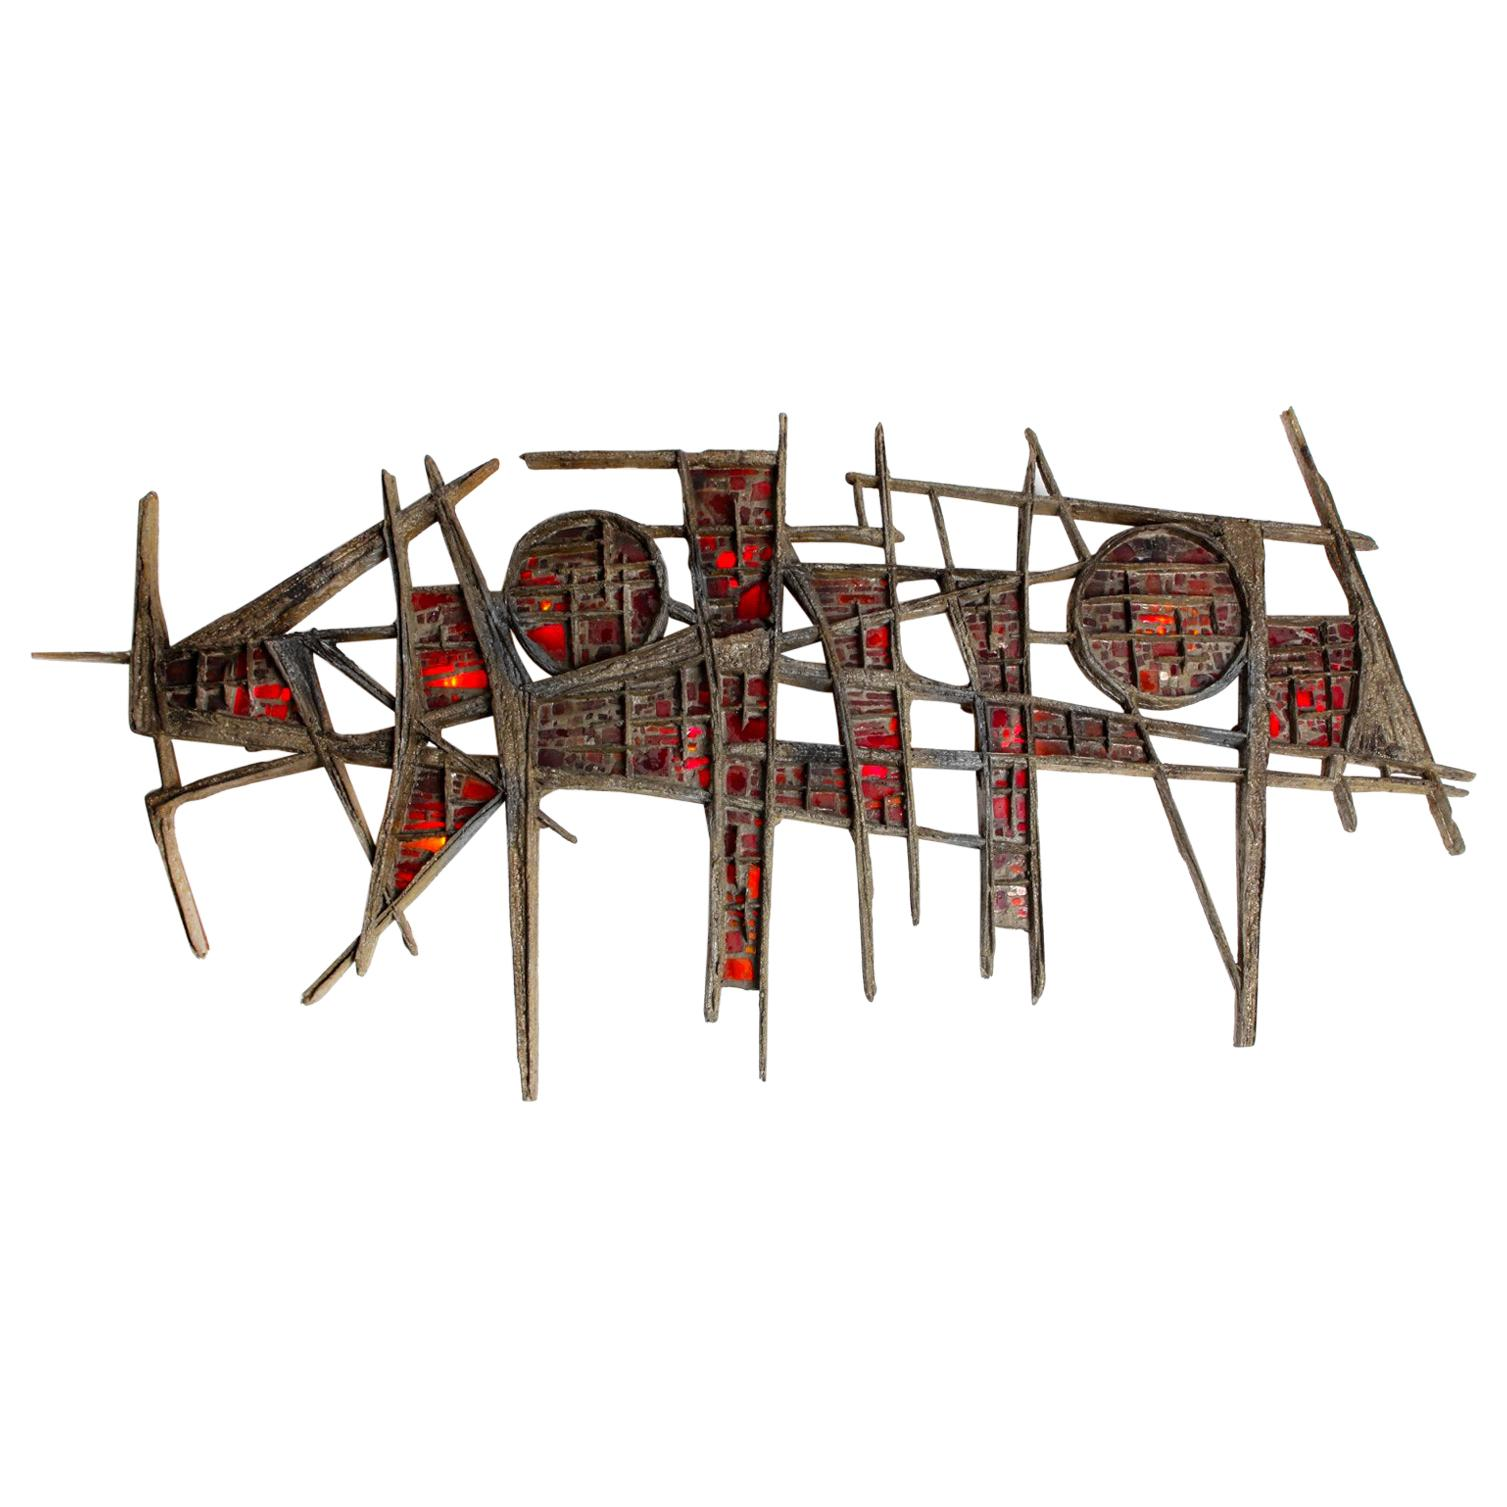 Pia Manu Brutalist Illuminated Wall Sculpture in Steel & Red Stained Glass 1970s